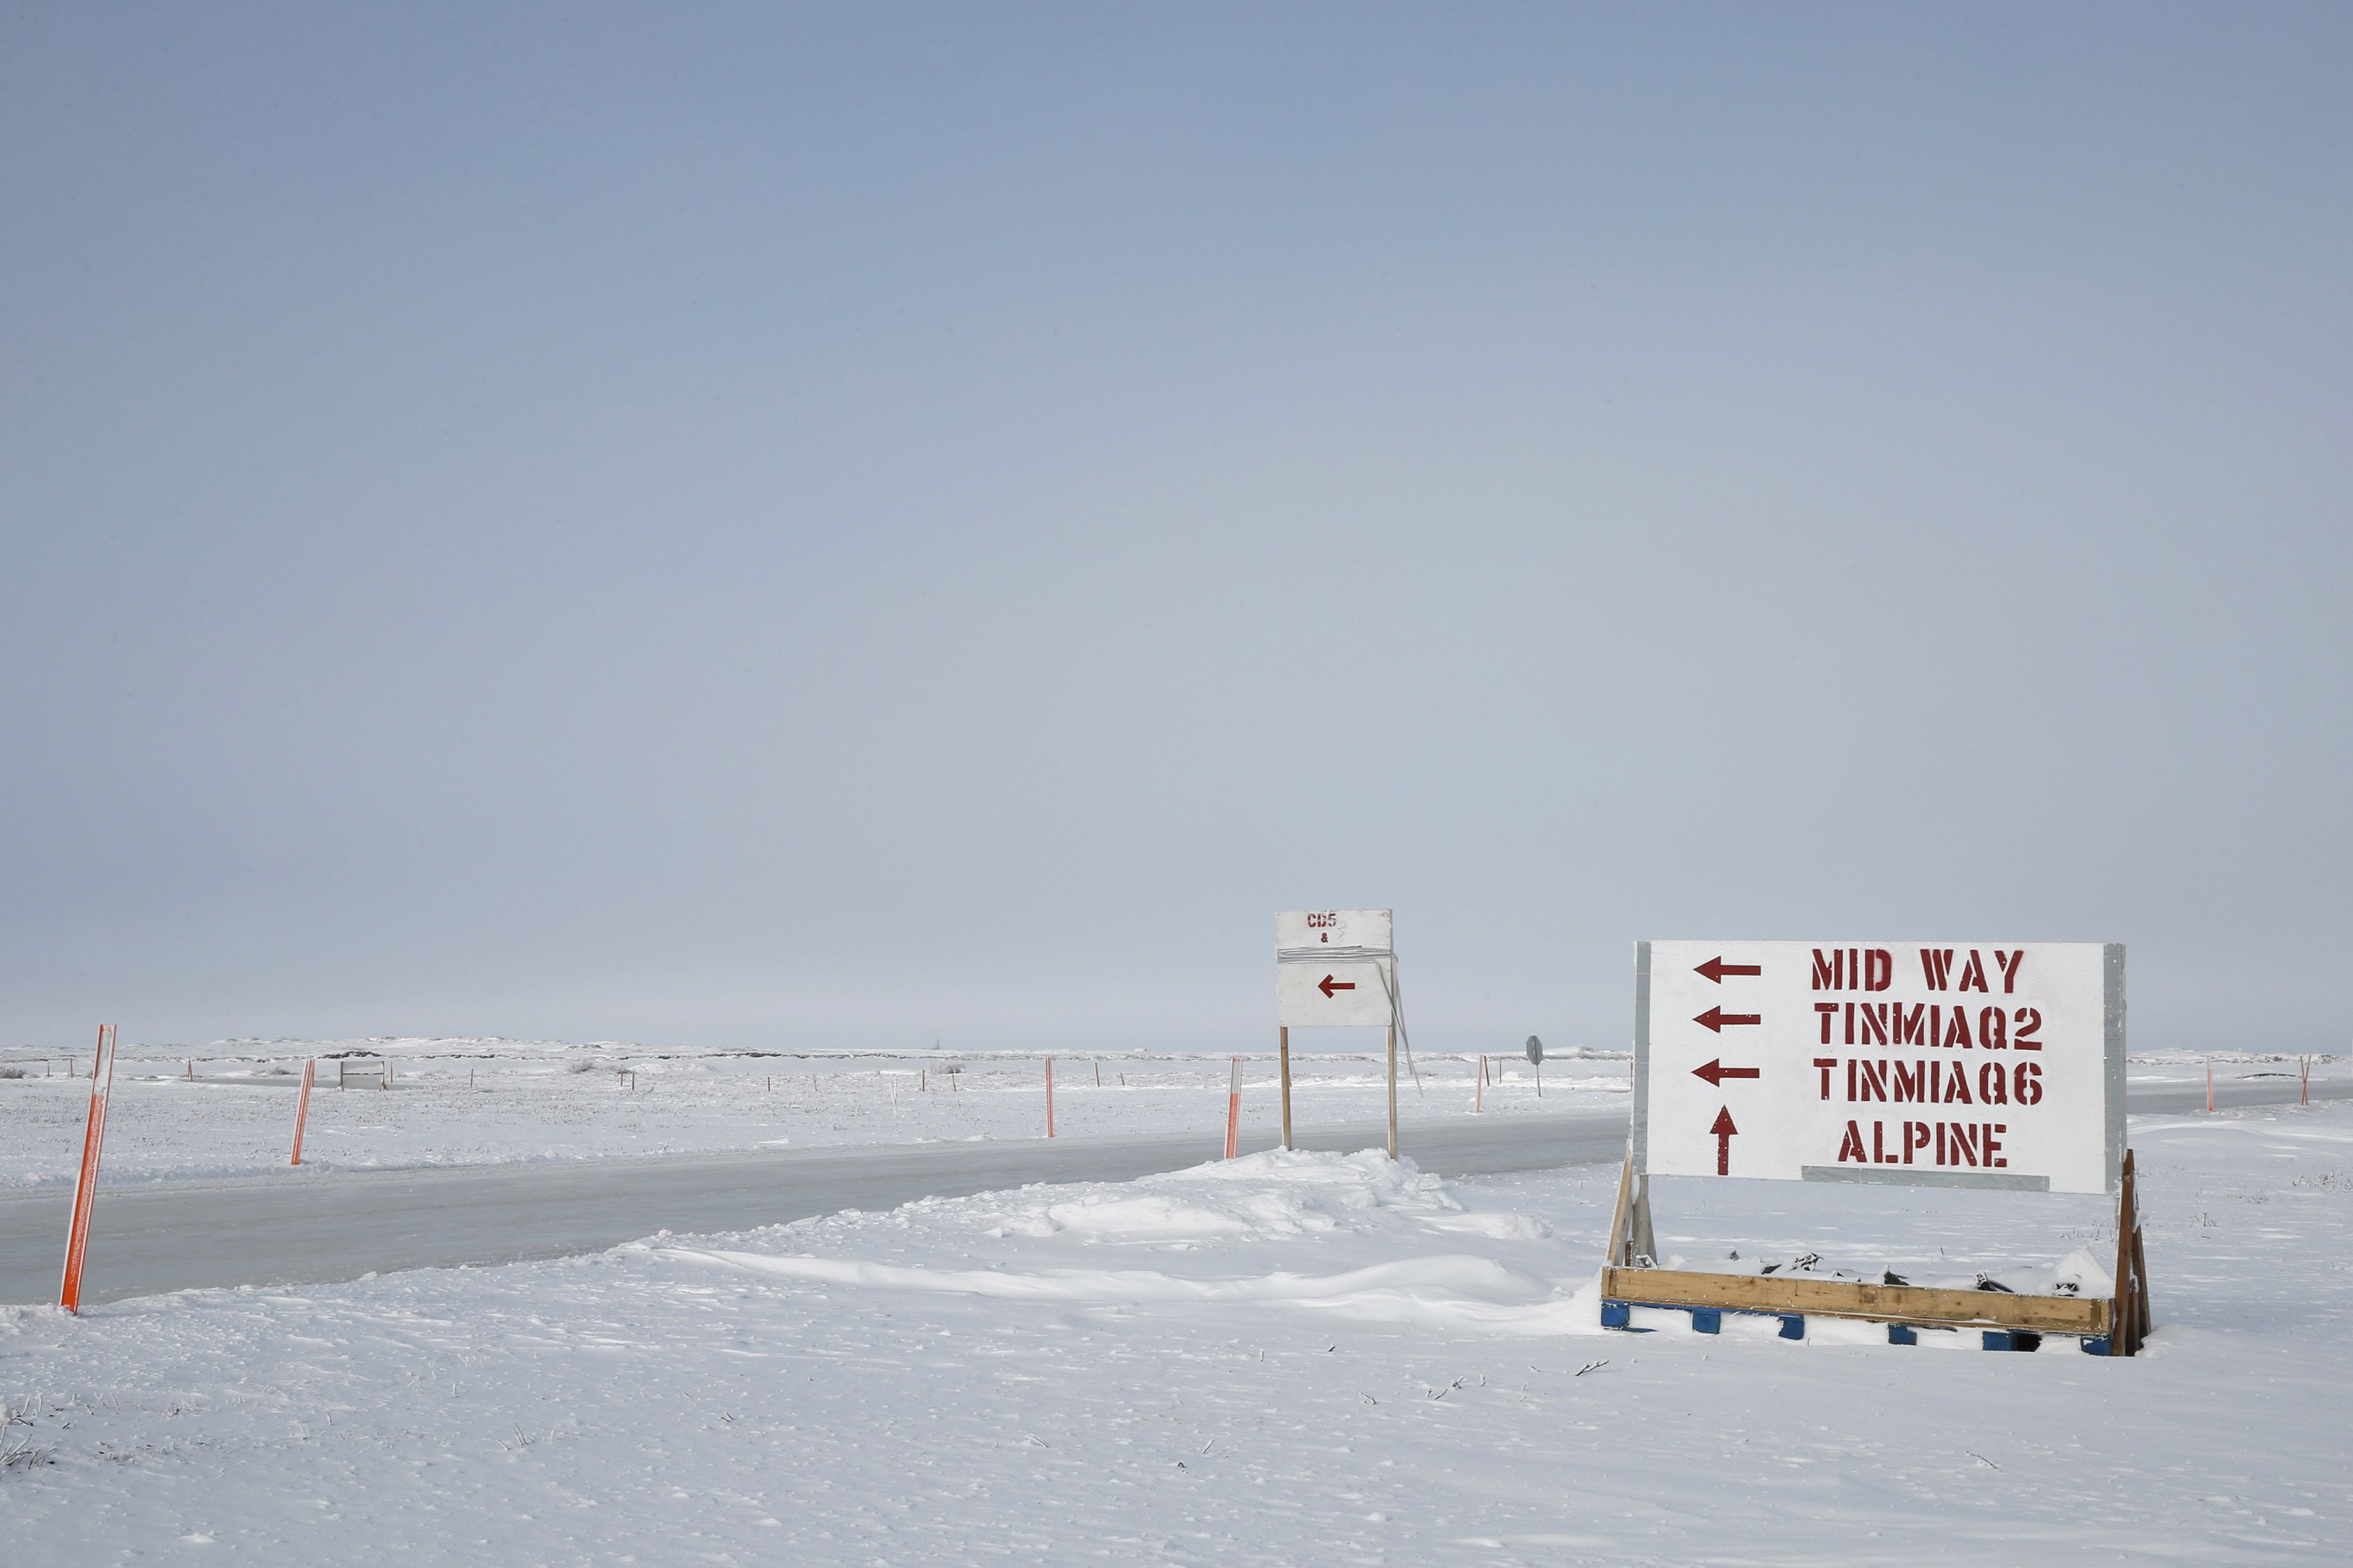 US federal agency launches environmental review for a big new oil field planned for Alaska's North Slope